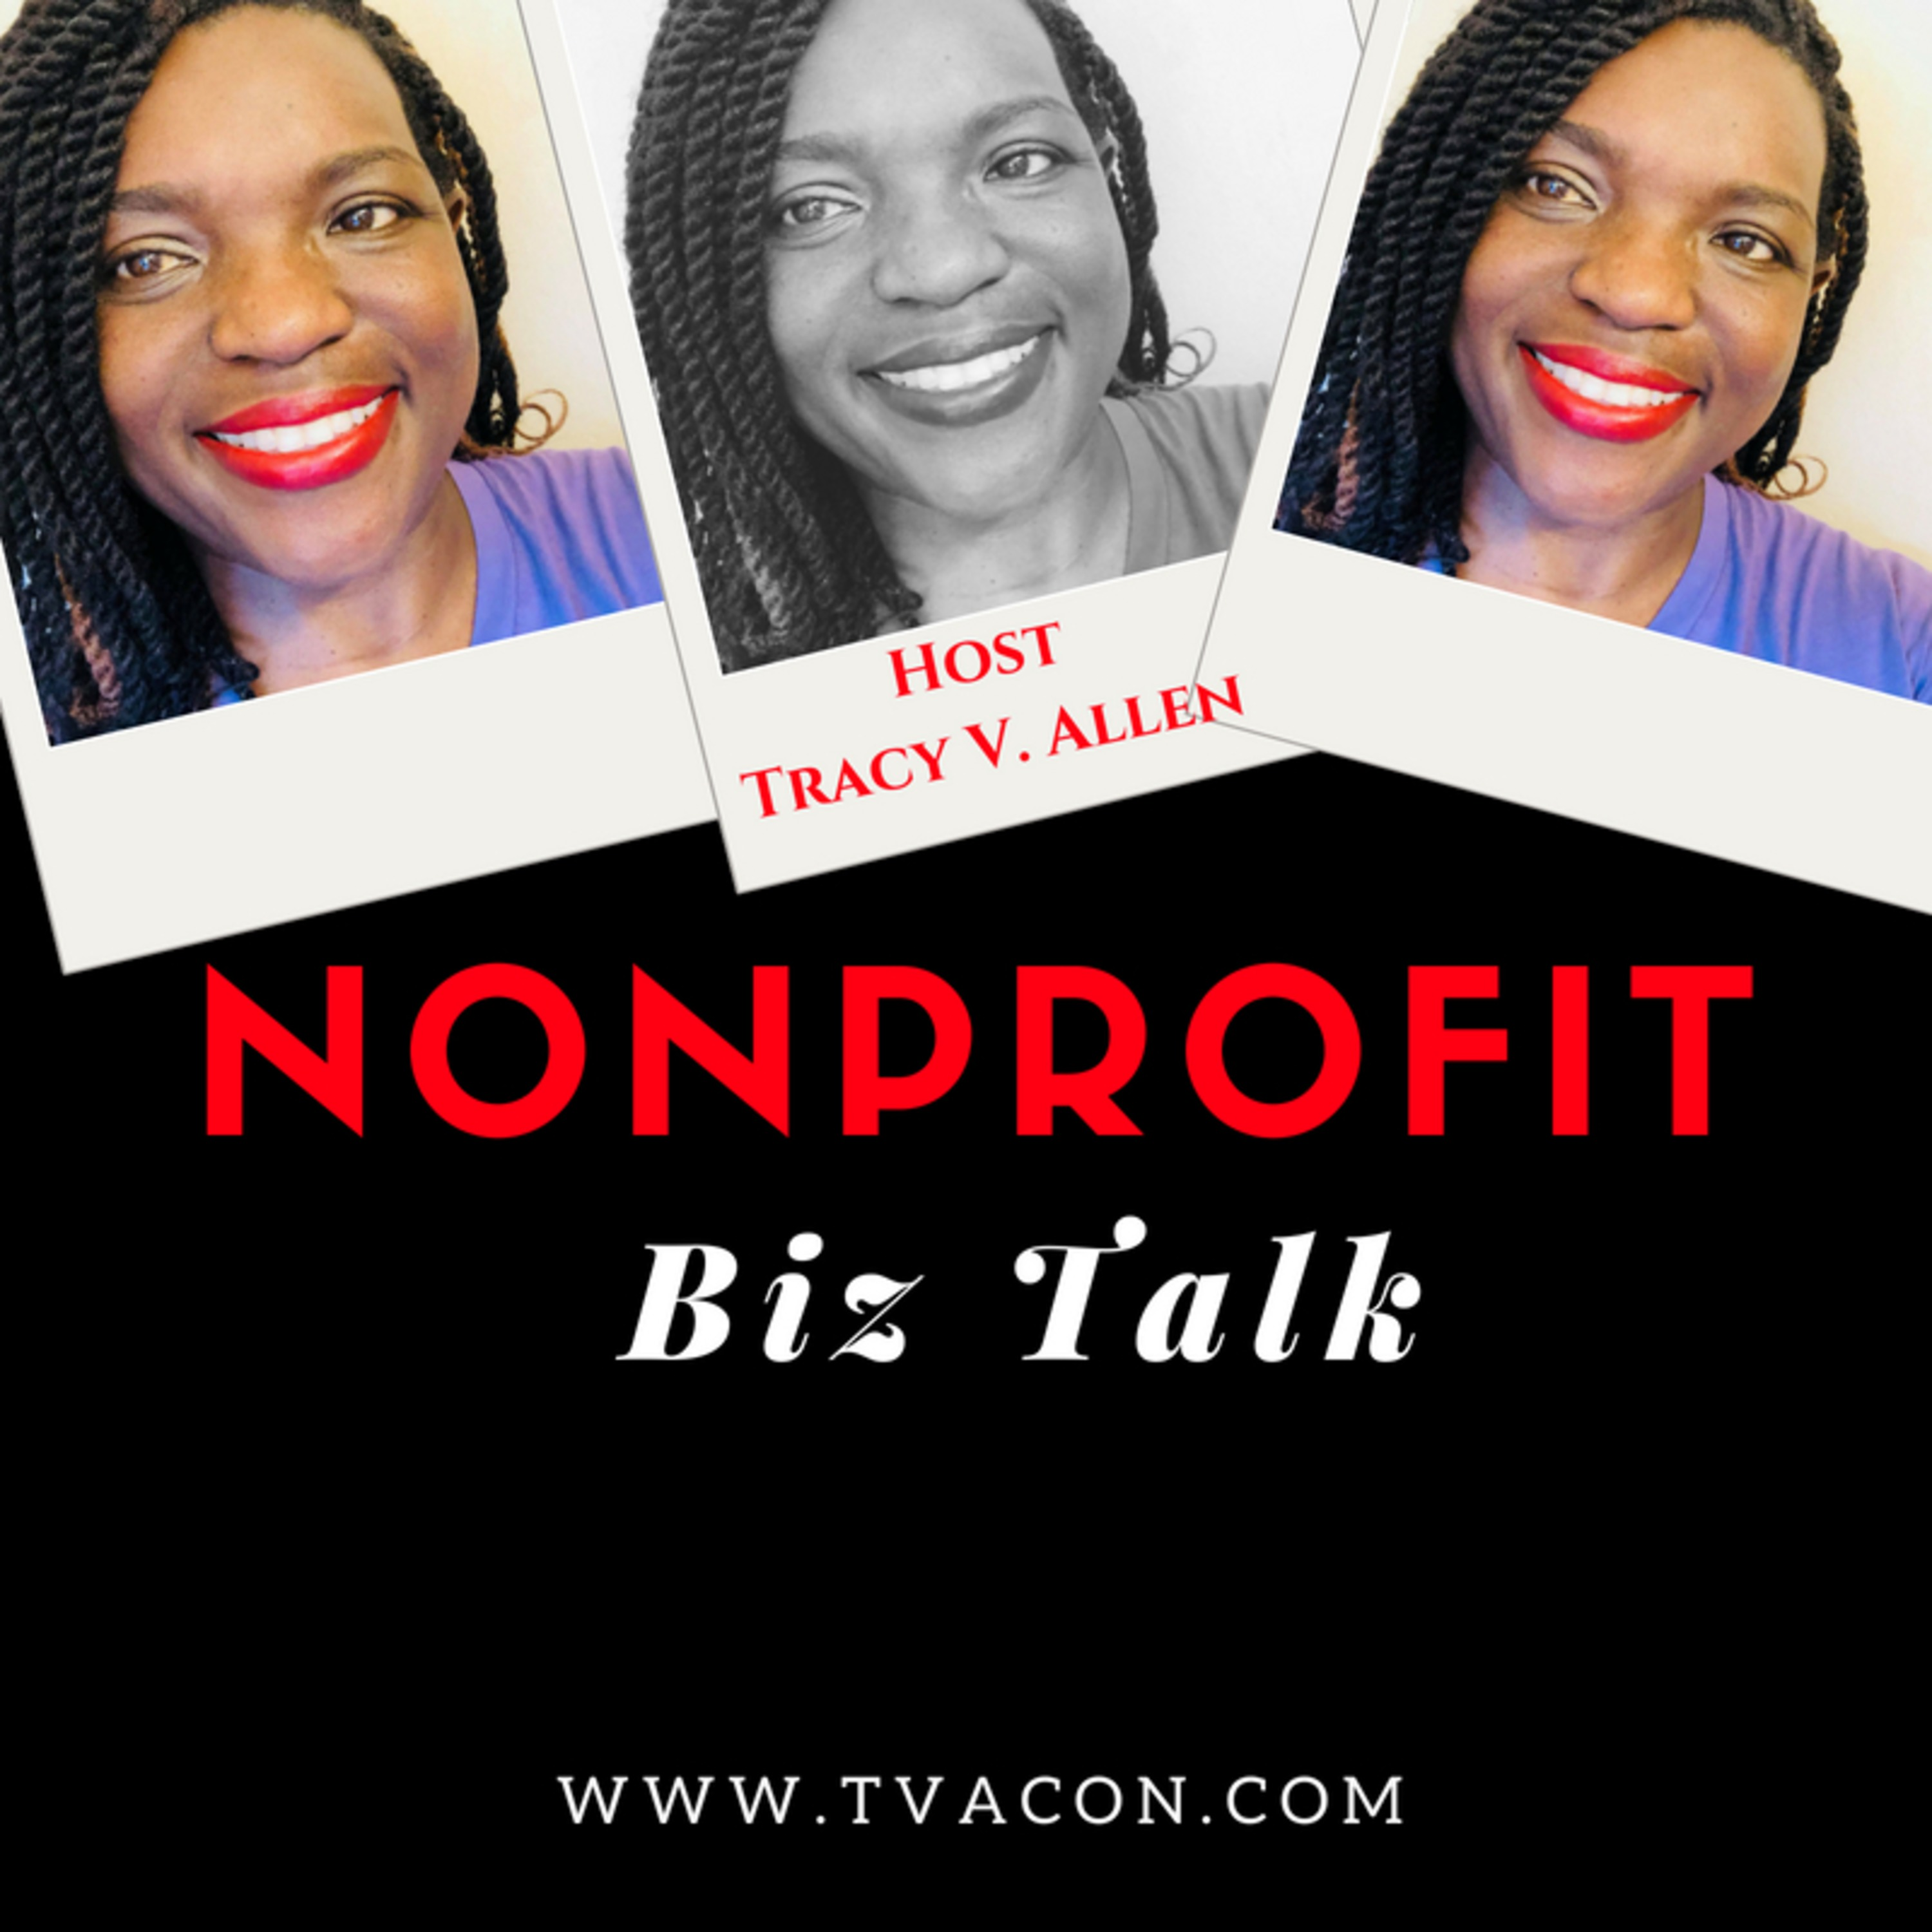 S2E1 | So You Want To Start A Nonprofit - Now What!